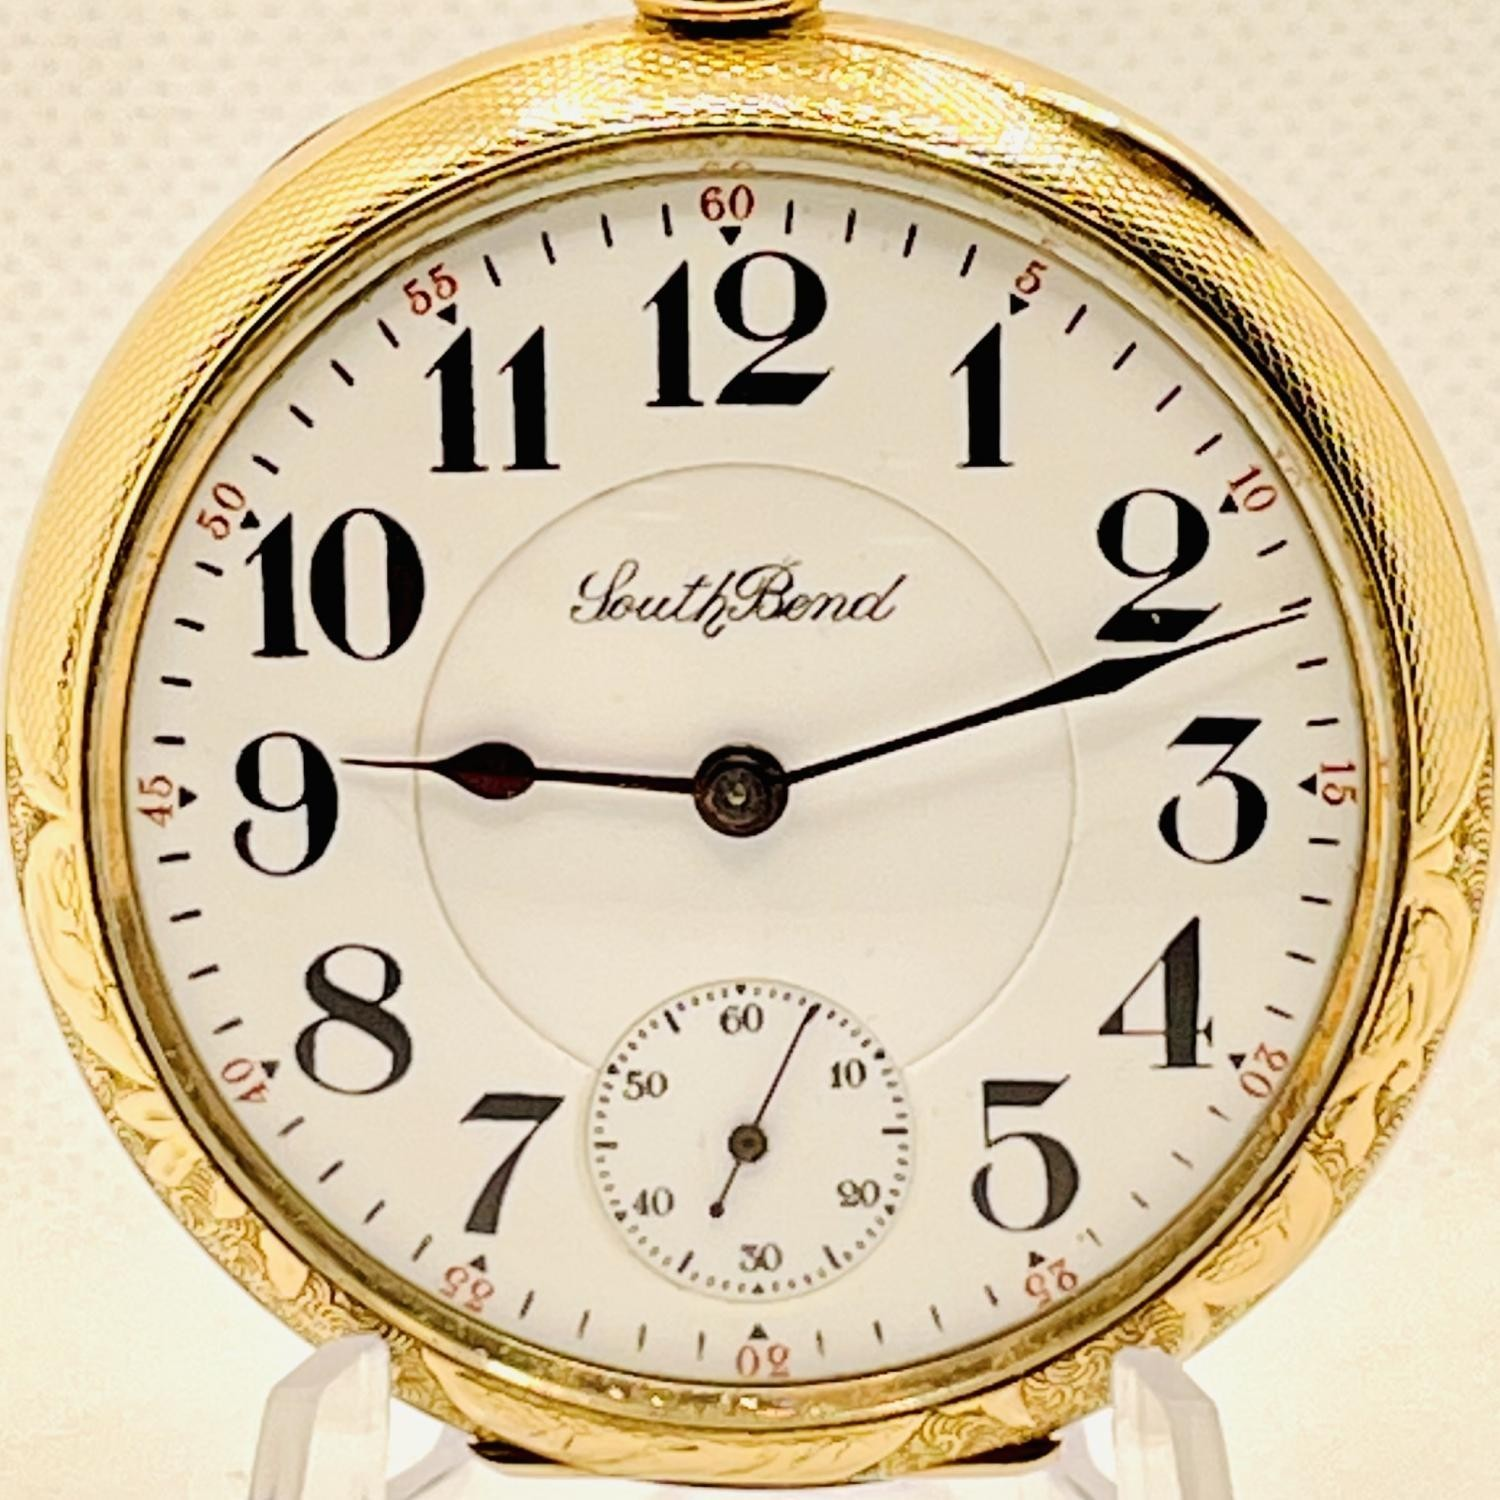 Image of South Bend 229 #643066 Dial